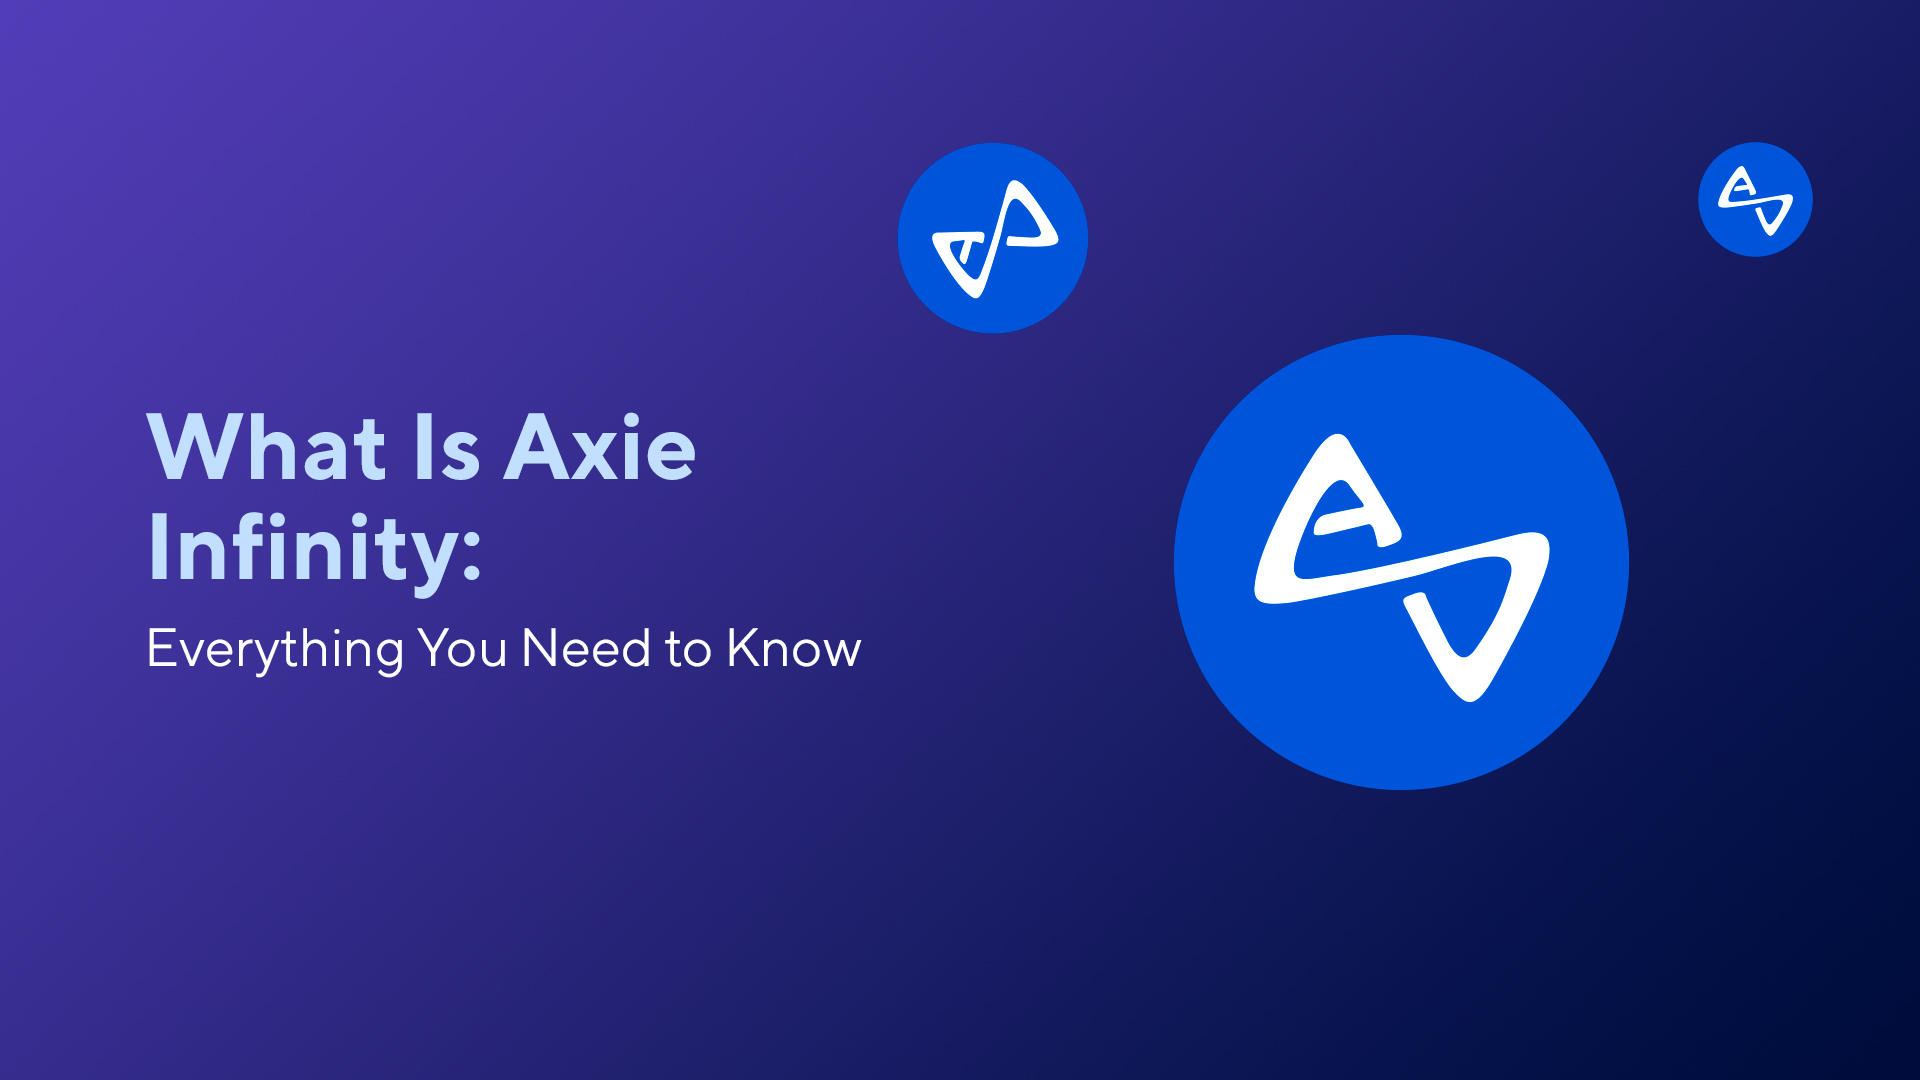 What Is Axie Infinity: Everything You Need to Know